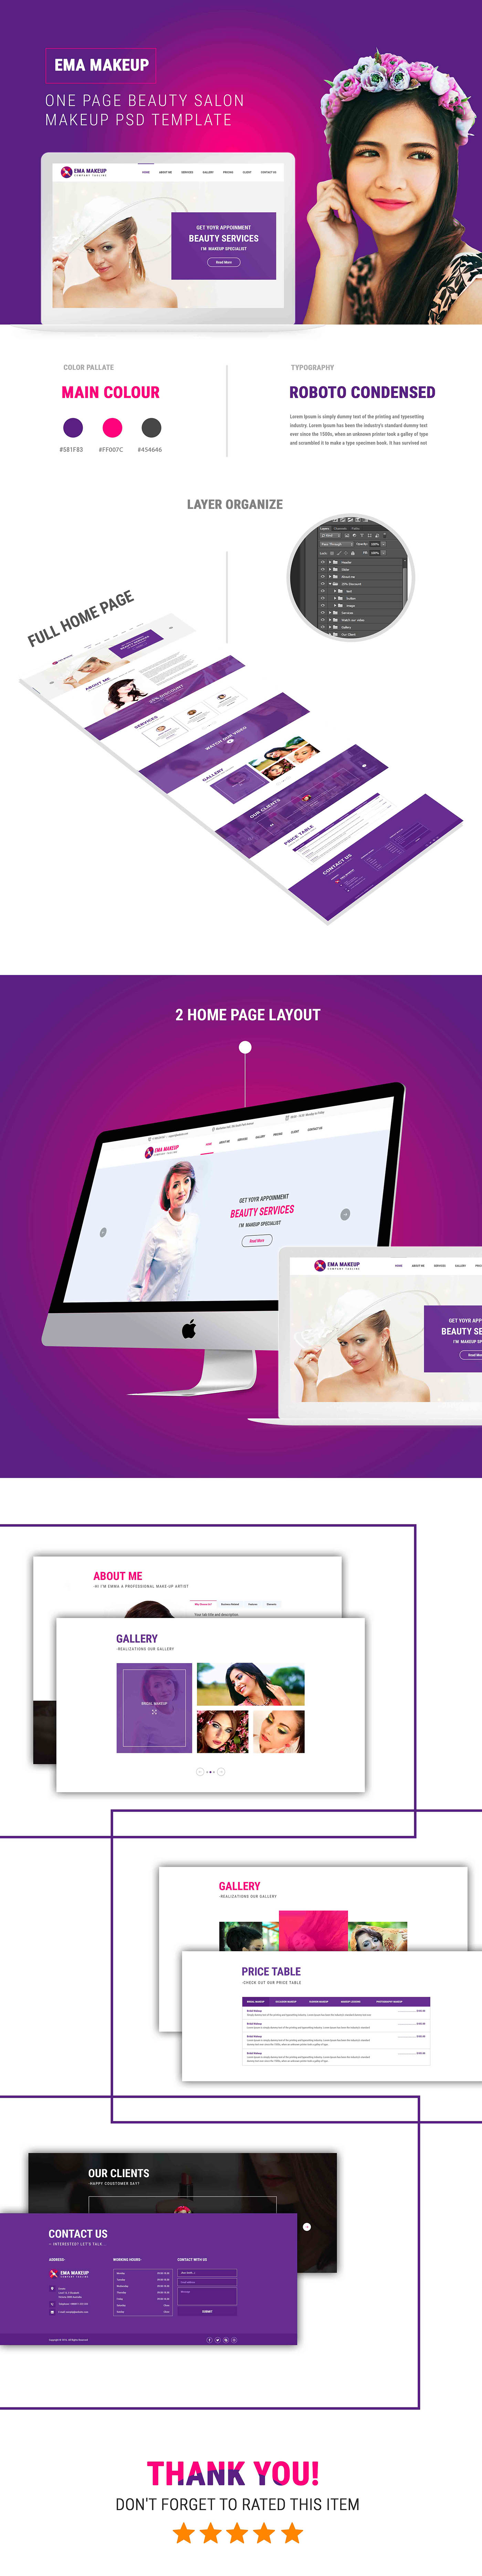 Ema Makeup - One Page Beauty Salon Makeup HTML Template